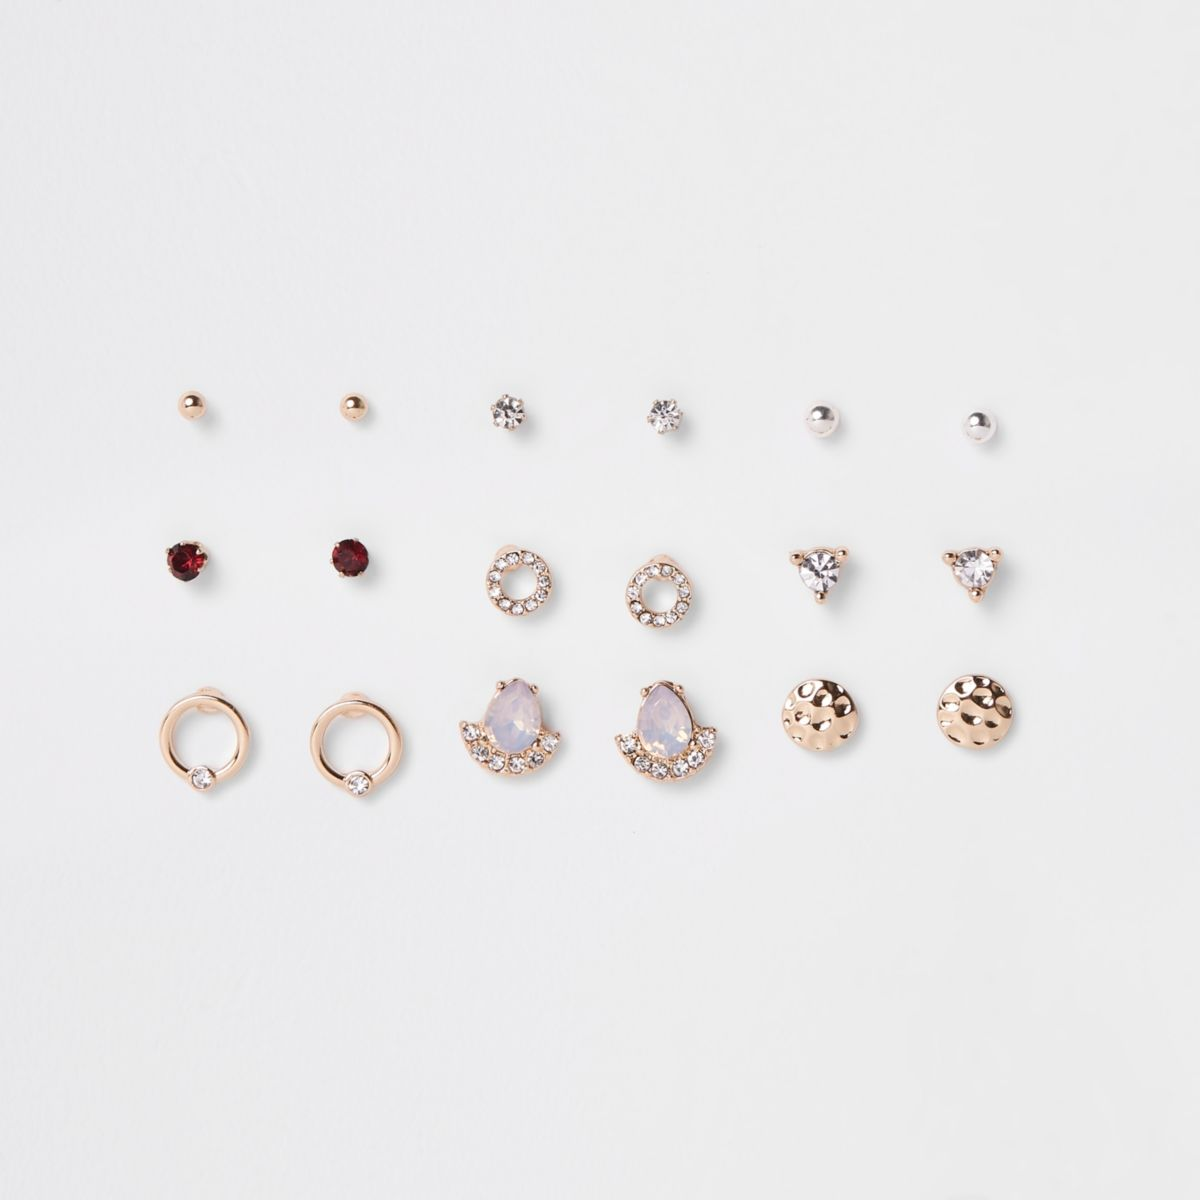 Gold tone opal rhinestone stud earrings pack